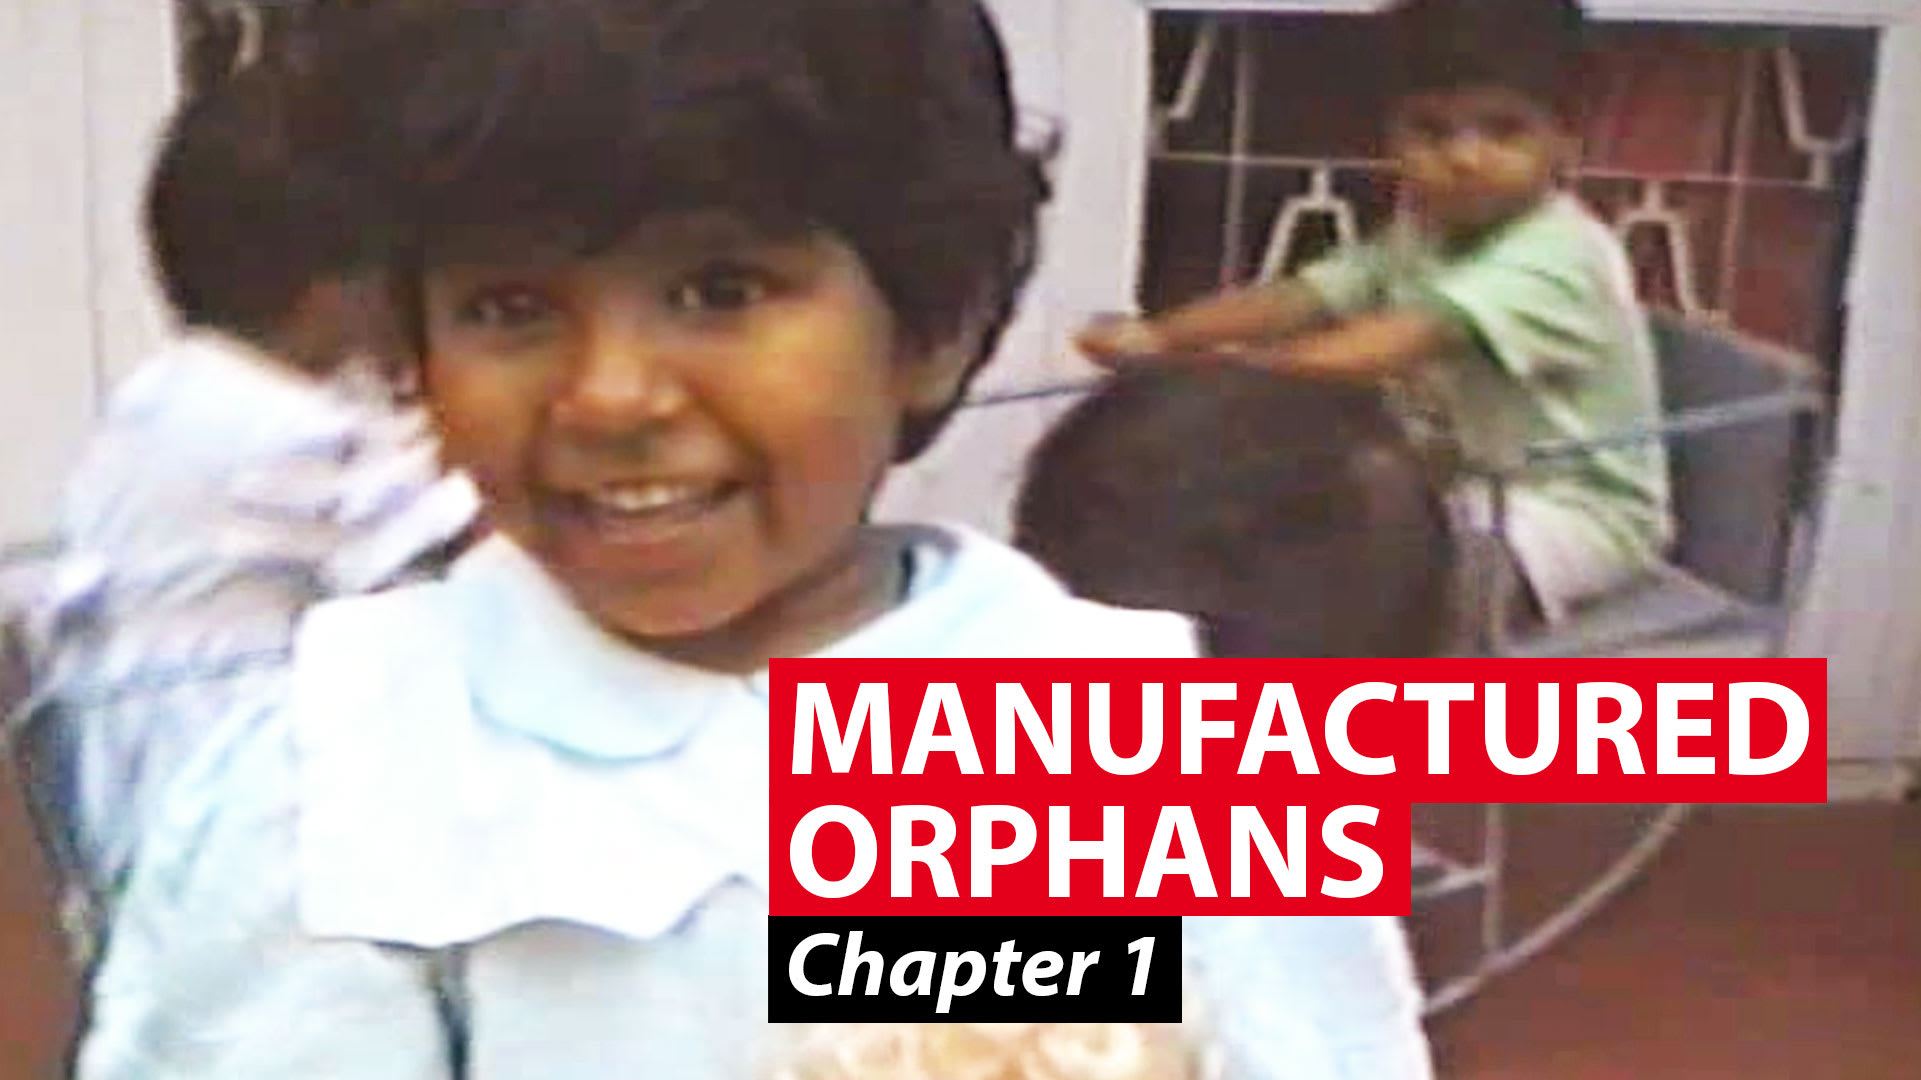 Manufactured orphans: Chapter 1